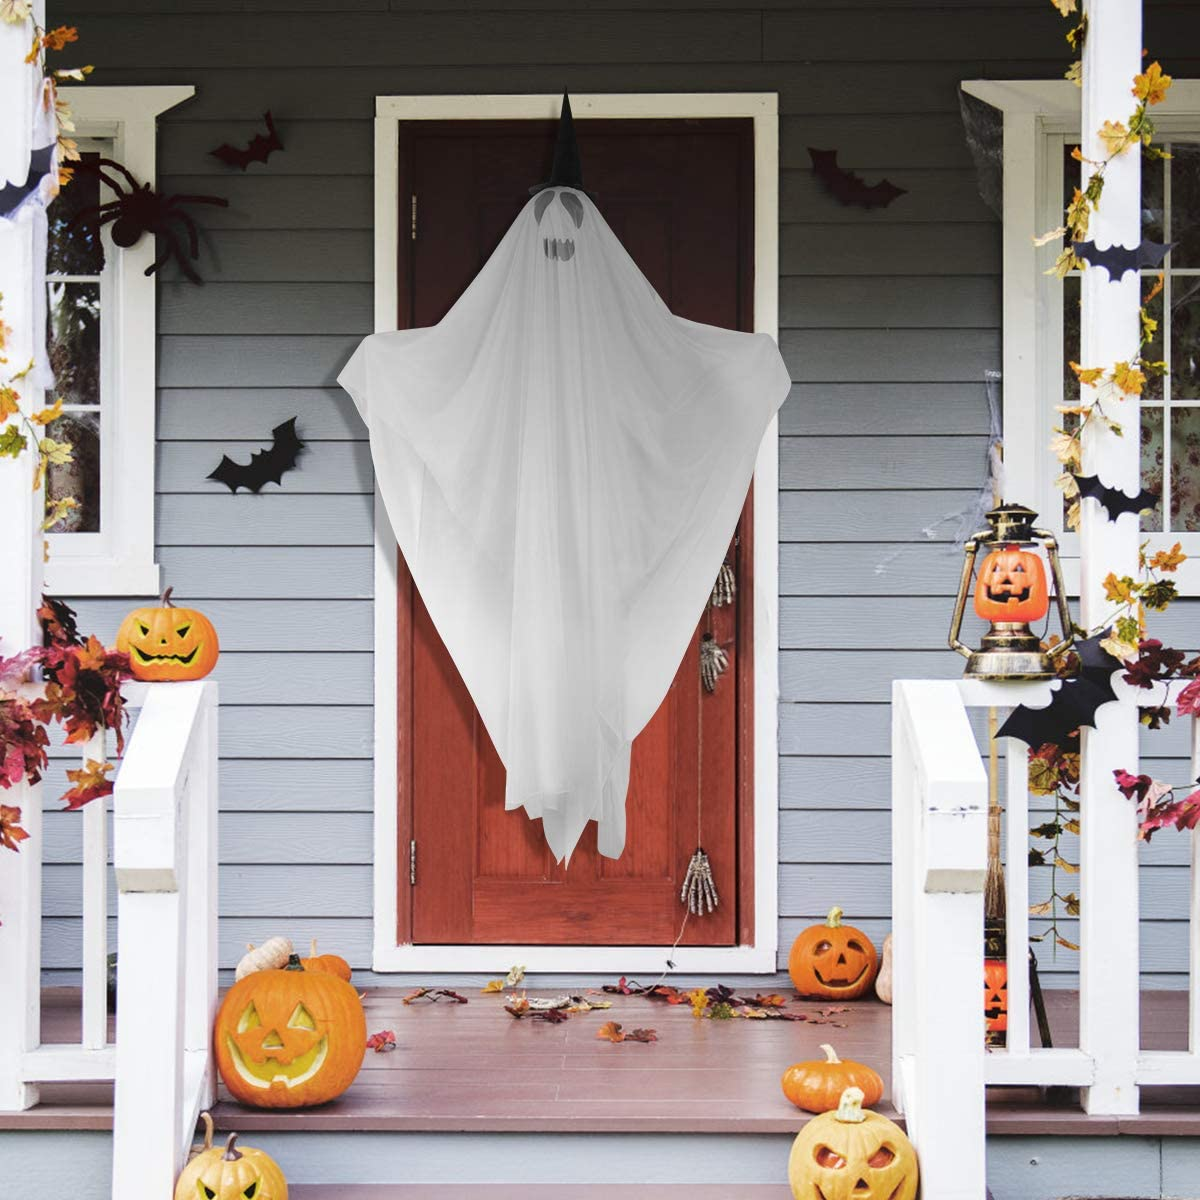 Light Up Halloween Ghost Decorations for Halloween Yard Lawn Outdoor Decorations 63 Inch (Battery Included)